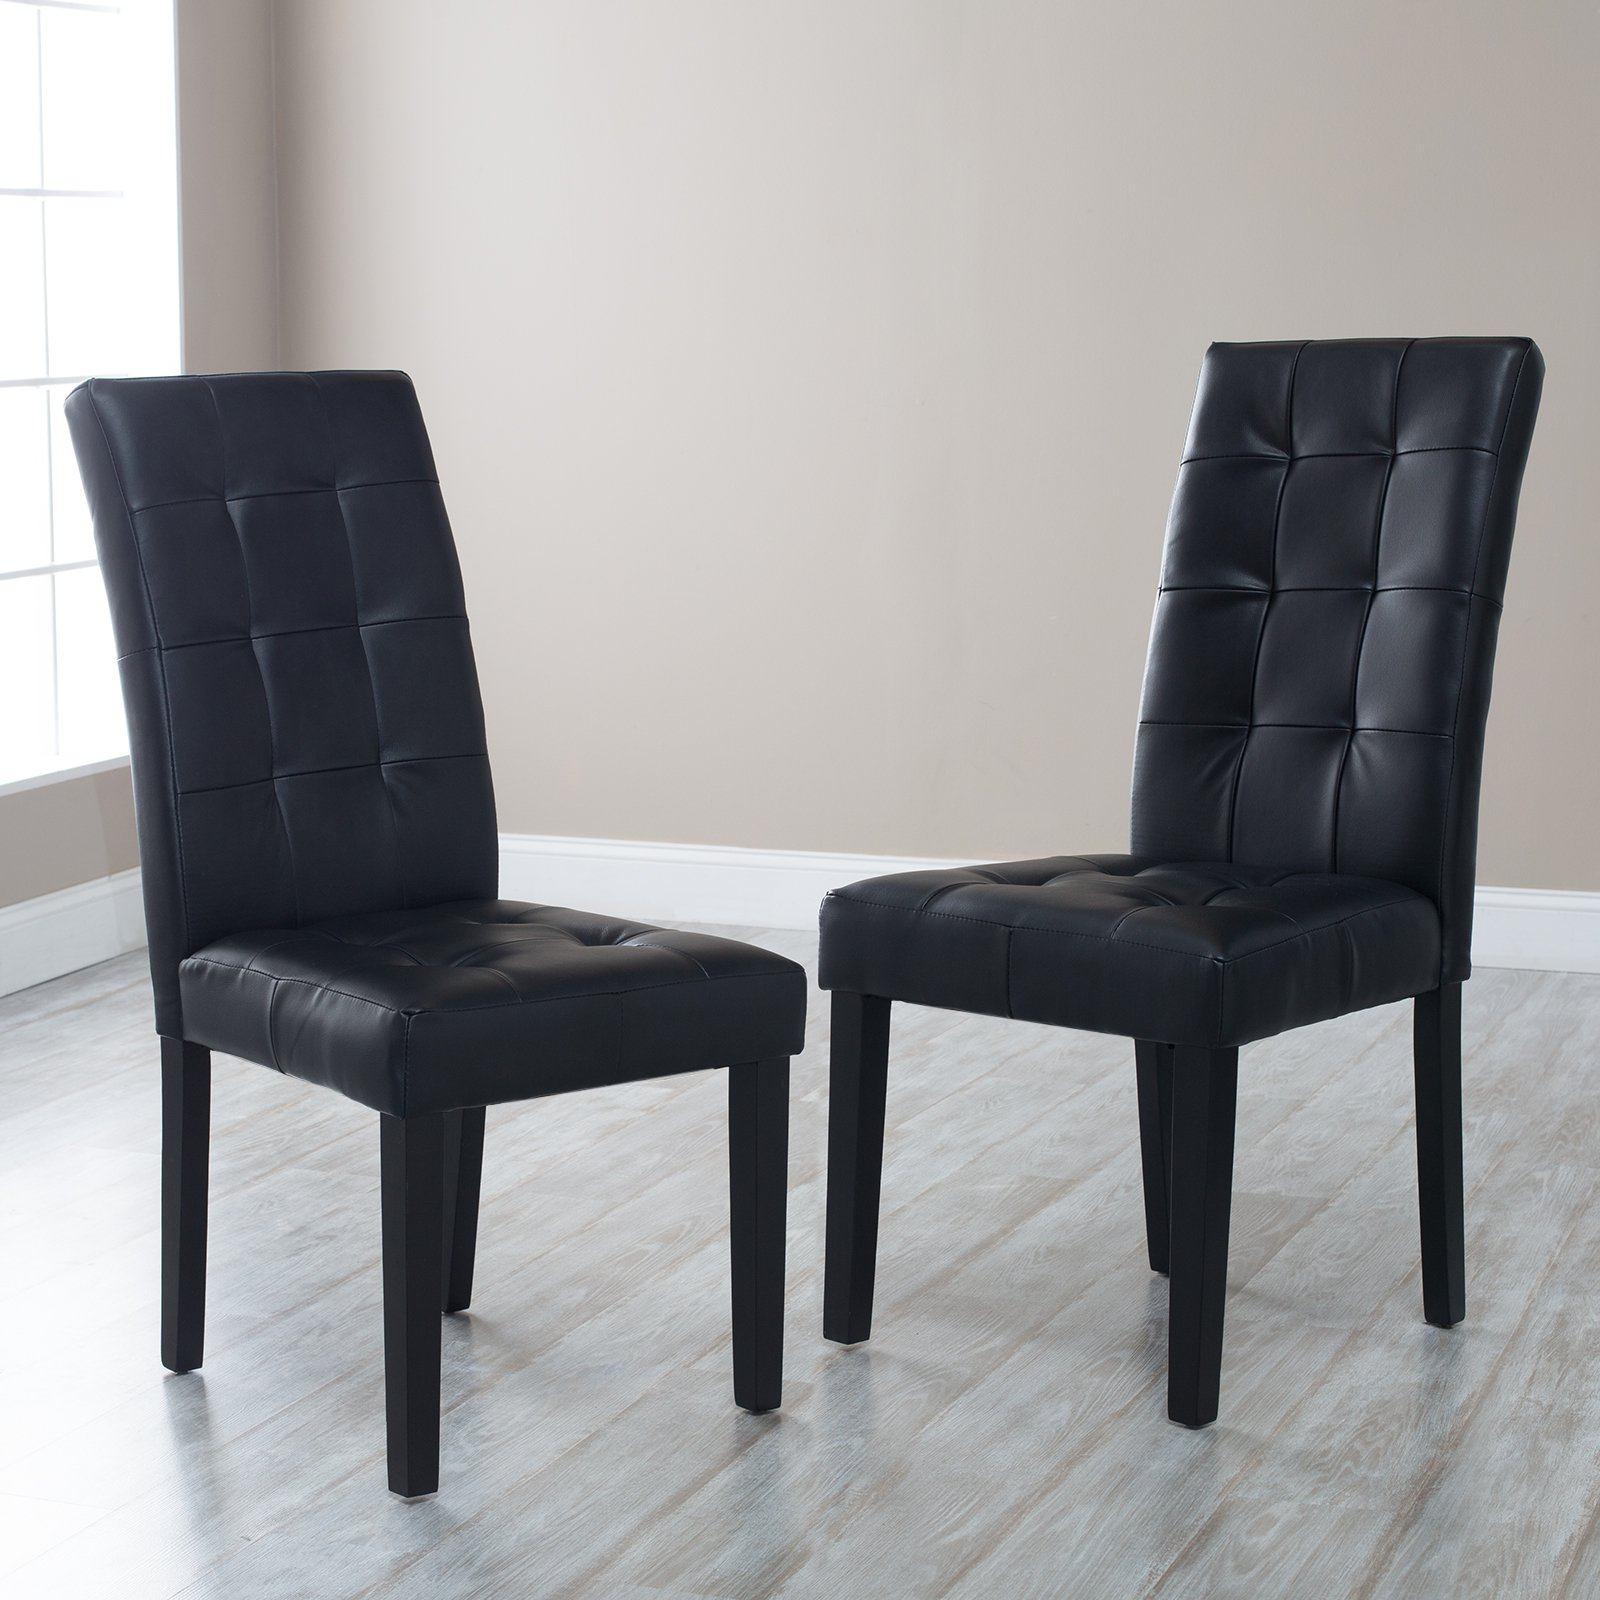 Chic Martha Bonded Leather Parsons Dining Chair - Set of 2 - Dining parsons dining chairs